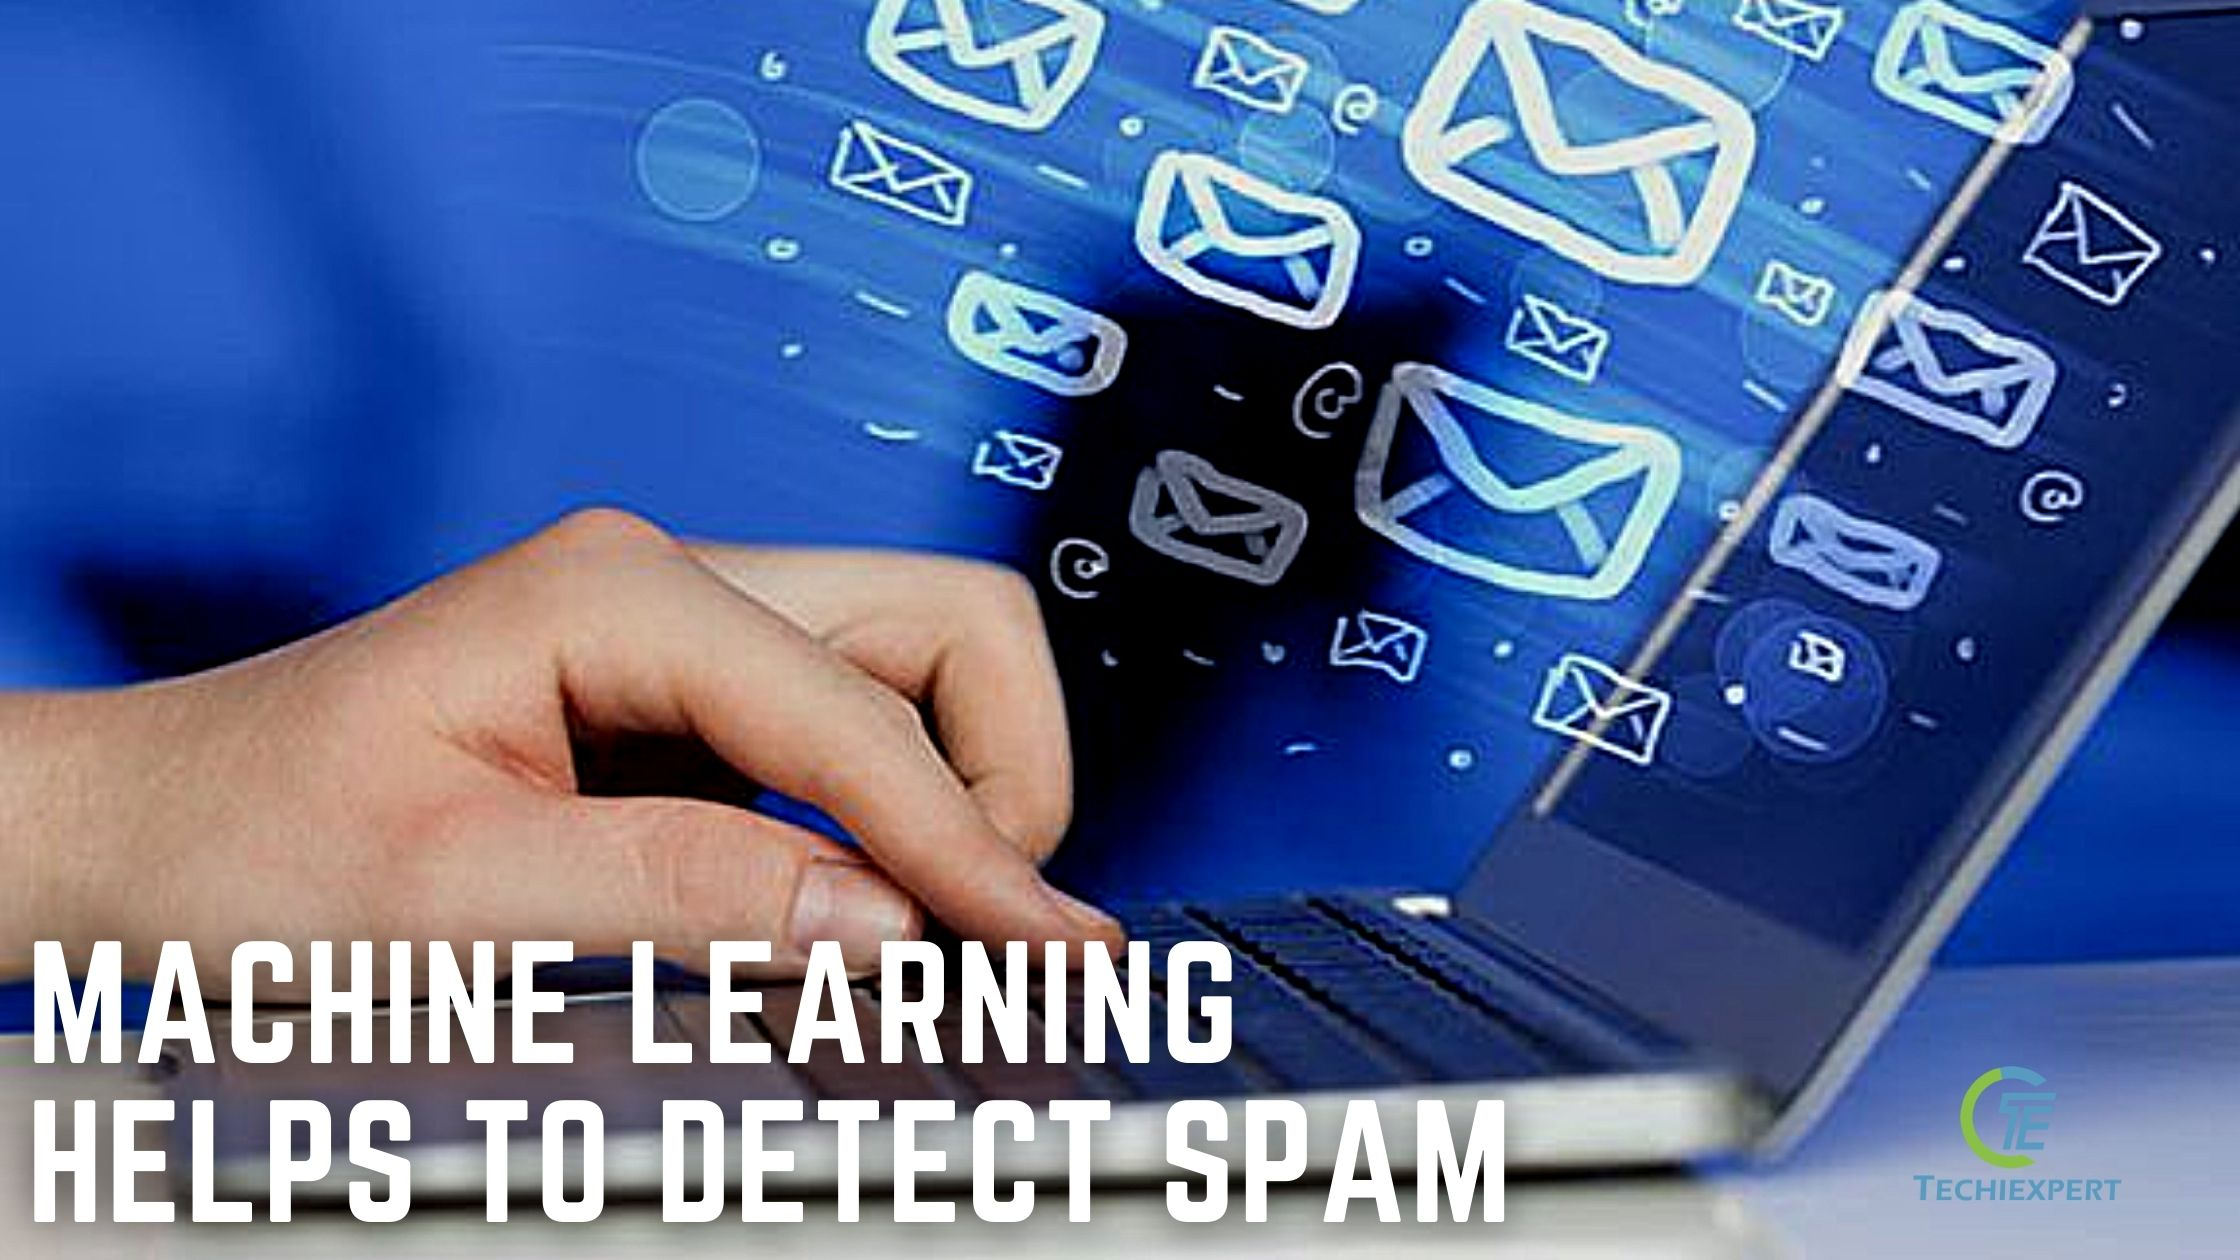 Spam detection and improving cyber security